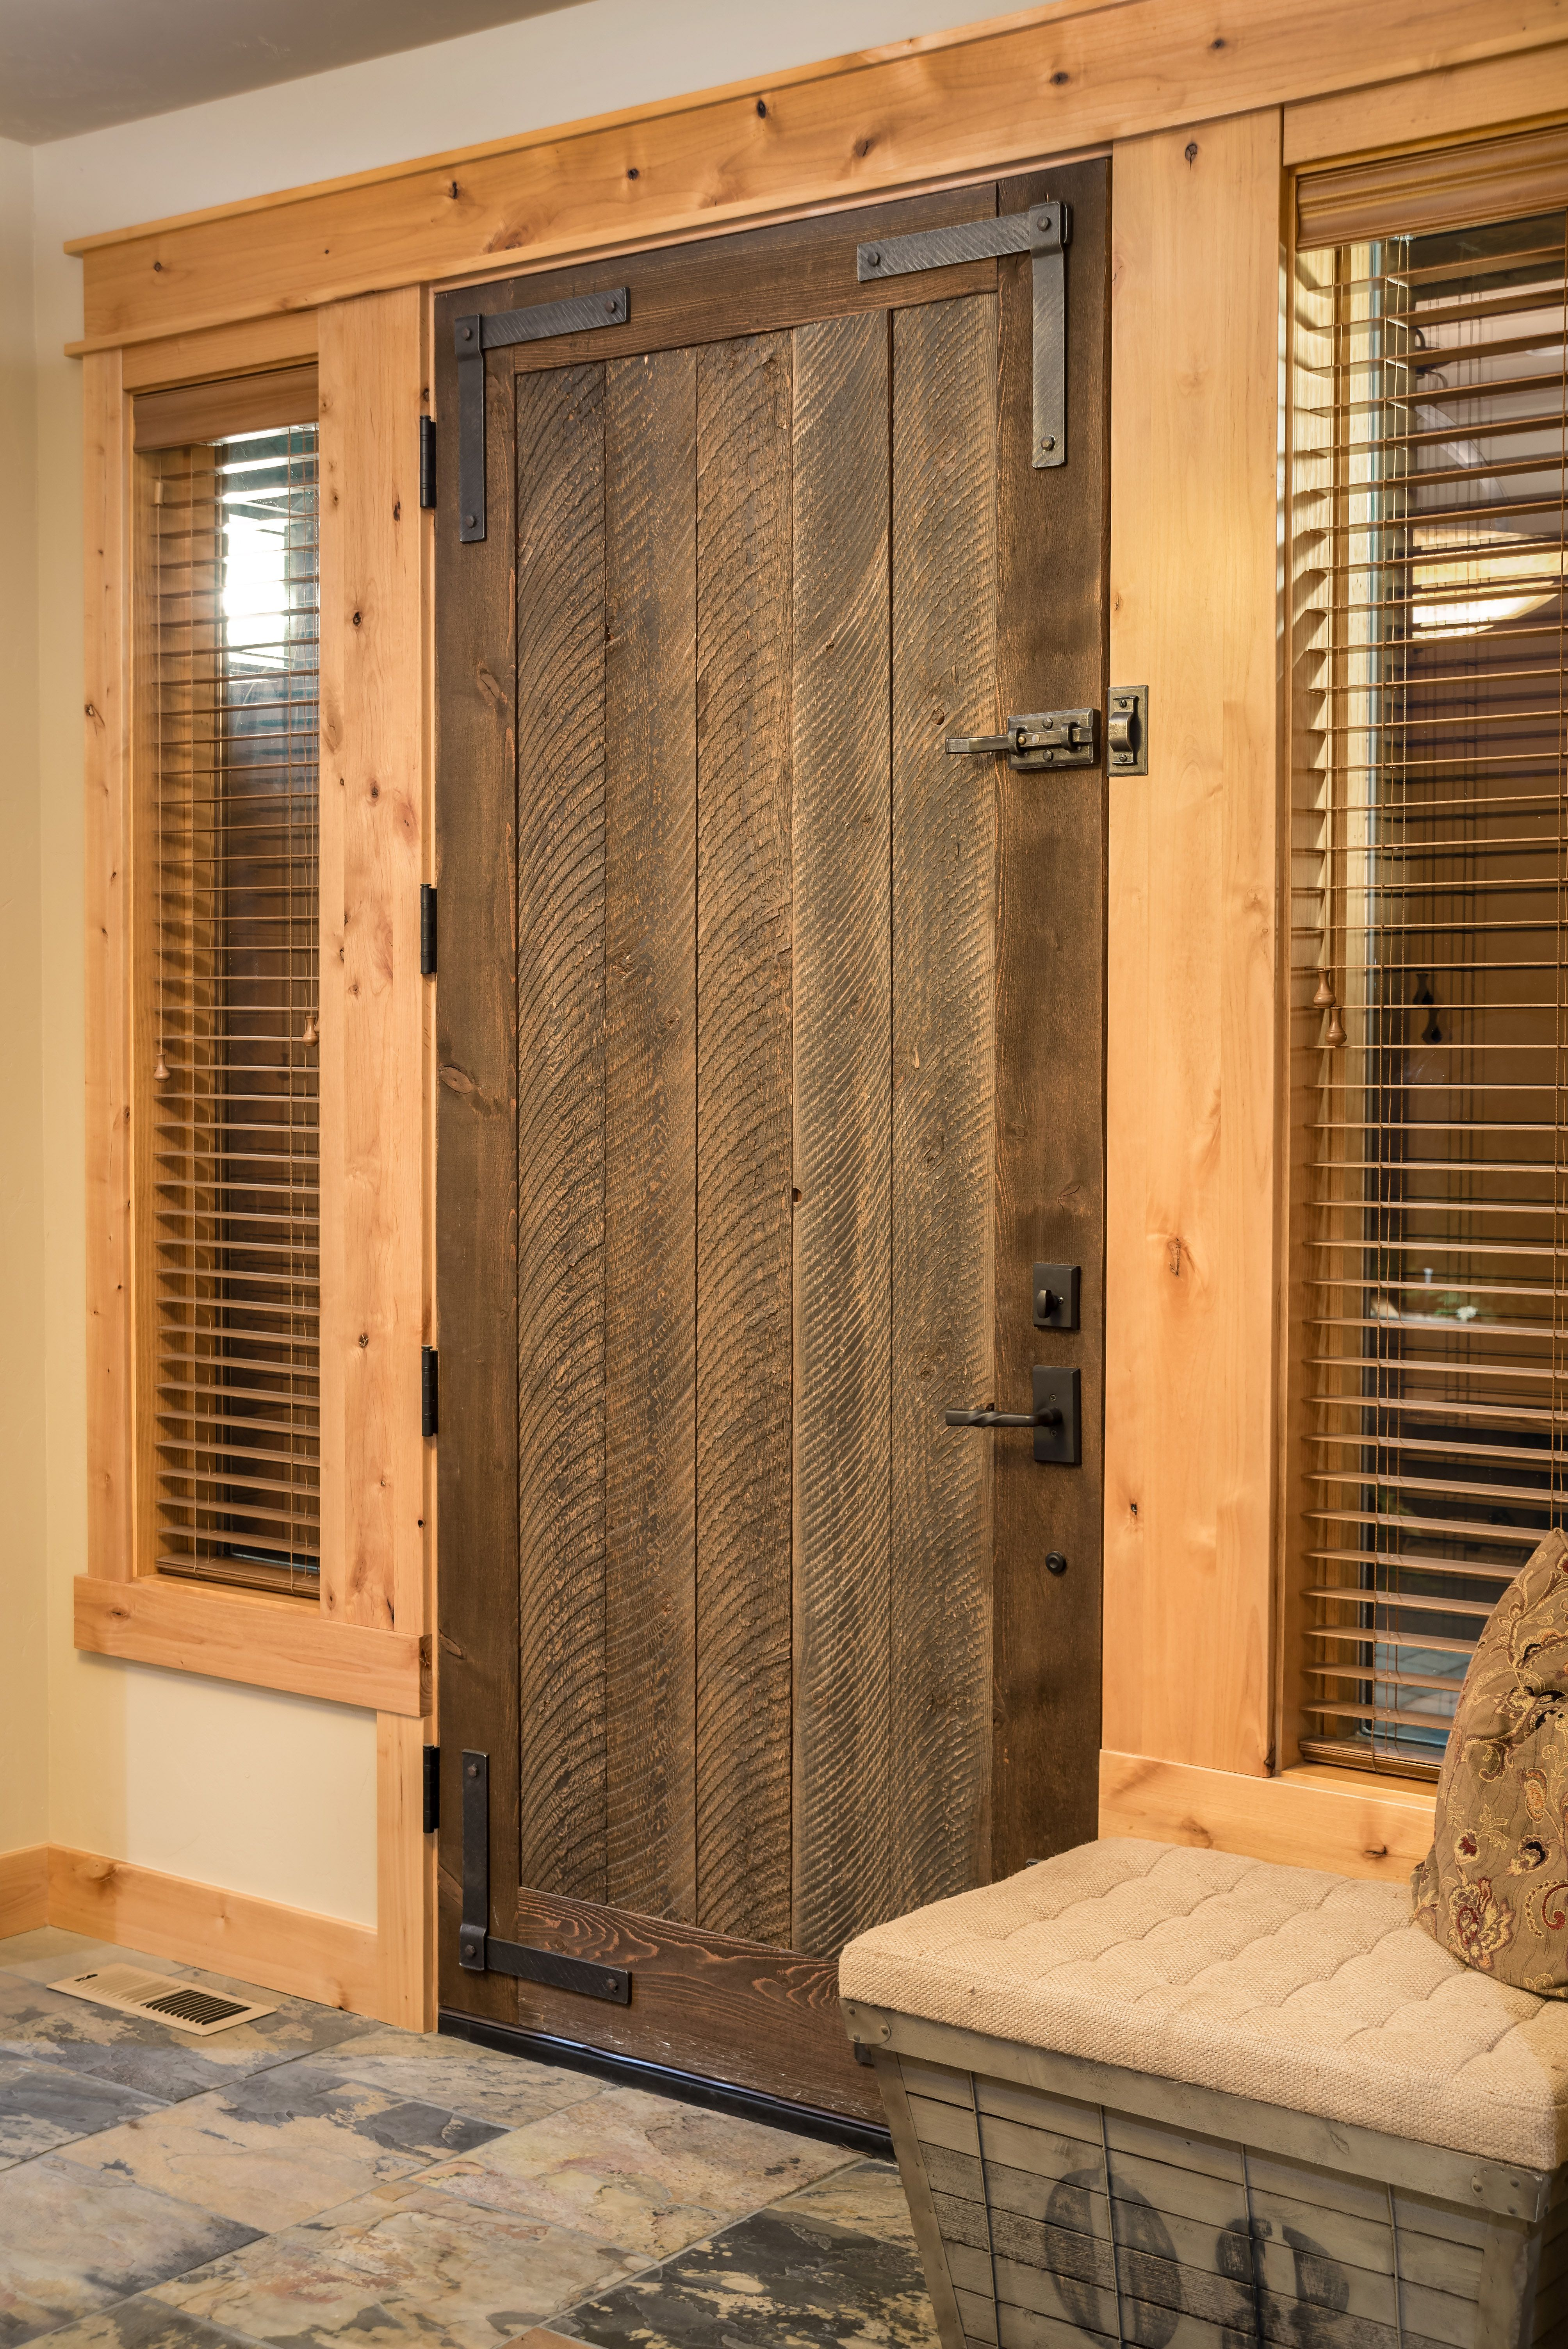 A rustic and well crafted front door gives the home distinct personality. & A rustic and well crafted front door gives the home distinct ... pezcame.com